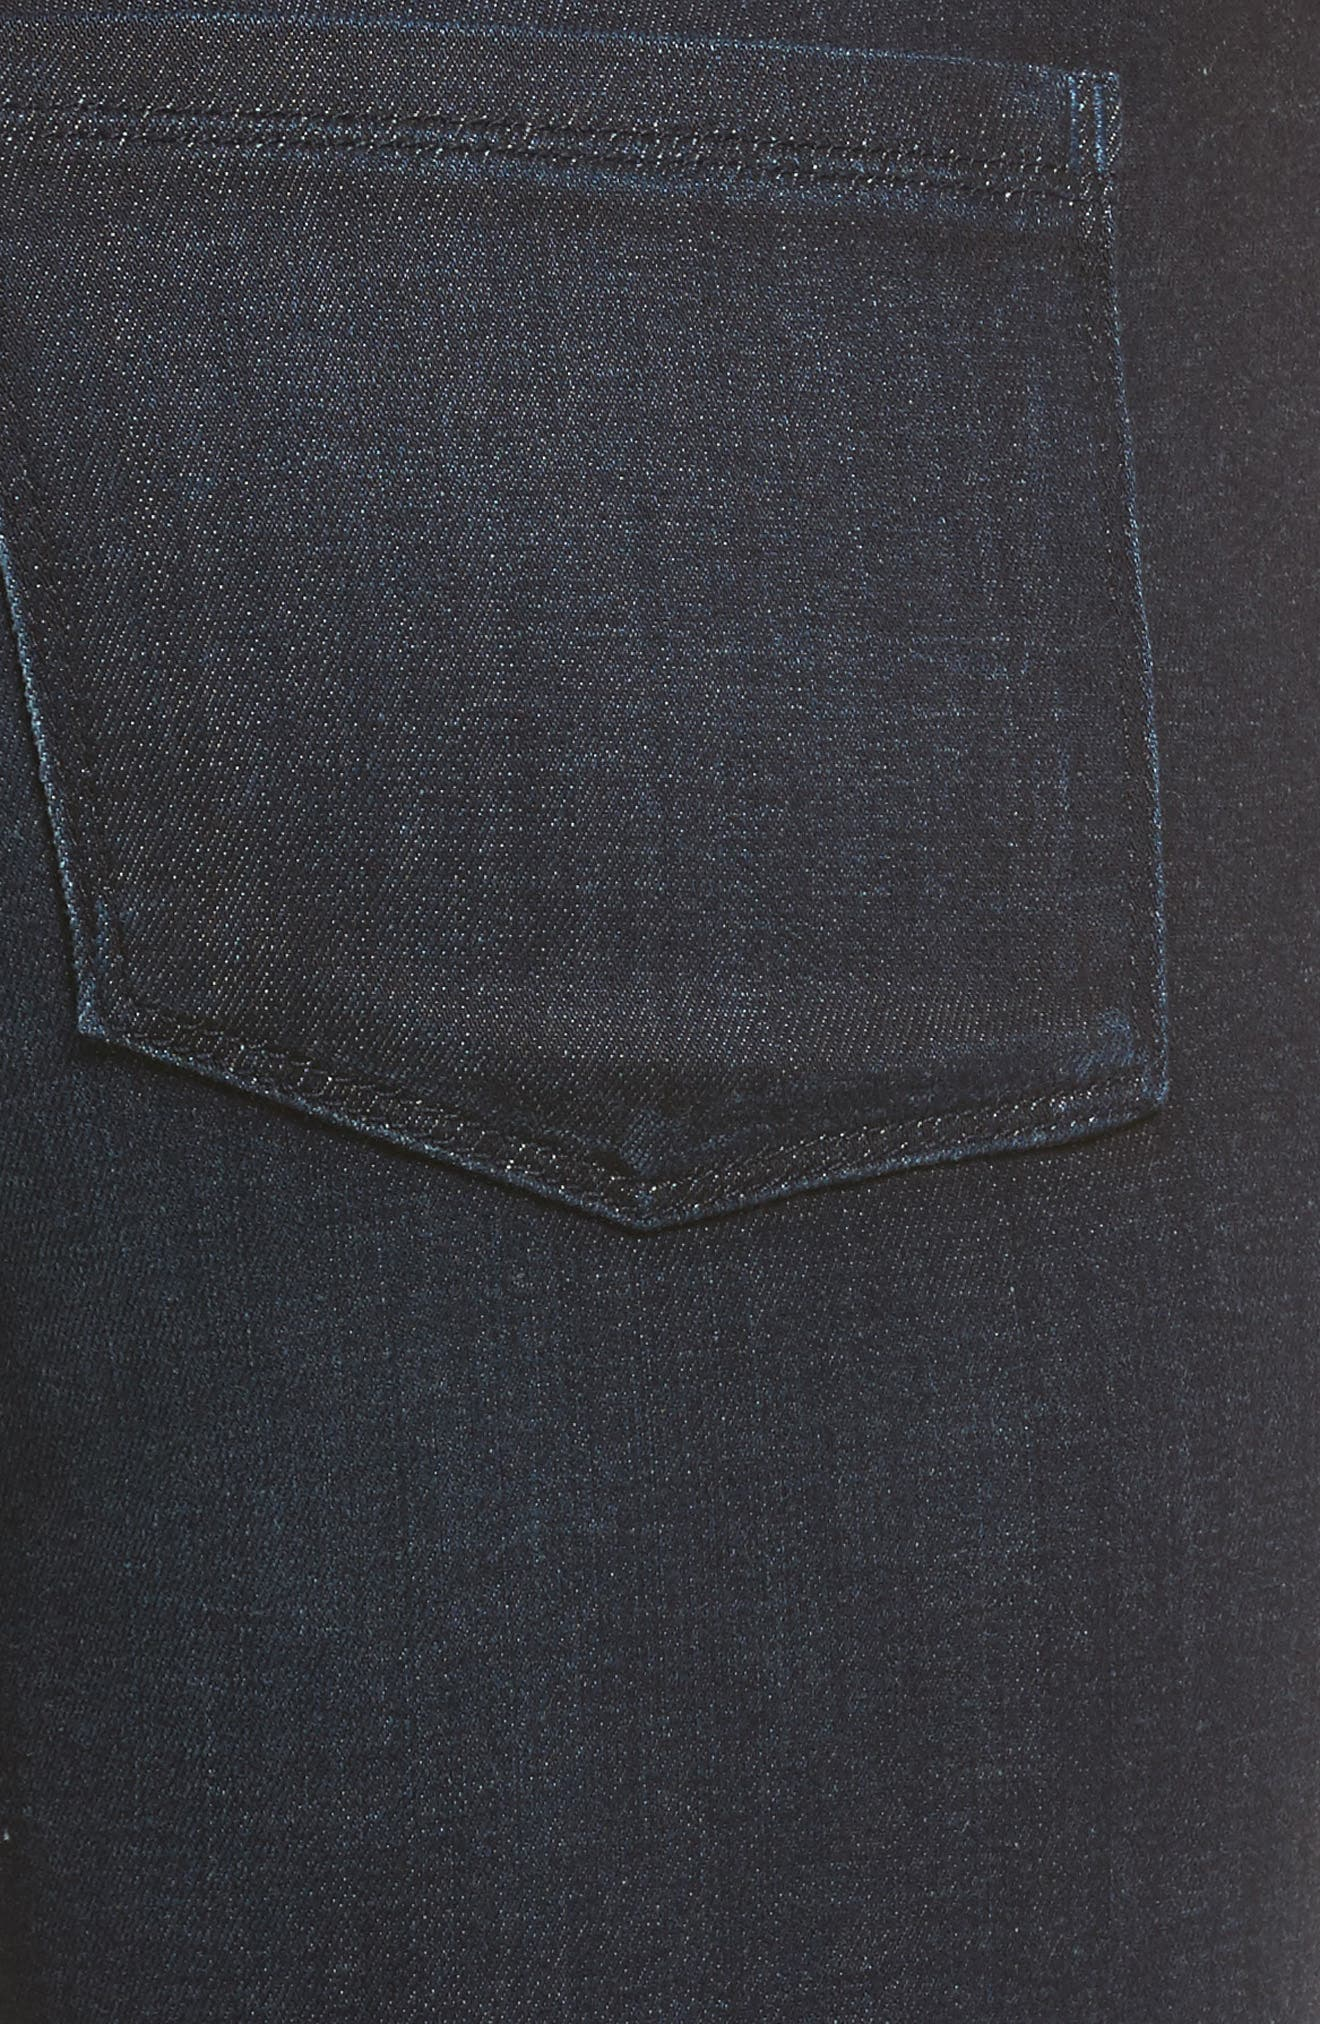 Becky Bootcut Jeans,                             Alternate thumbnail 5, color,                             Washed Sky